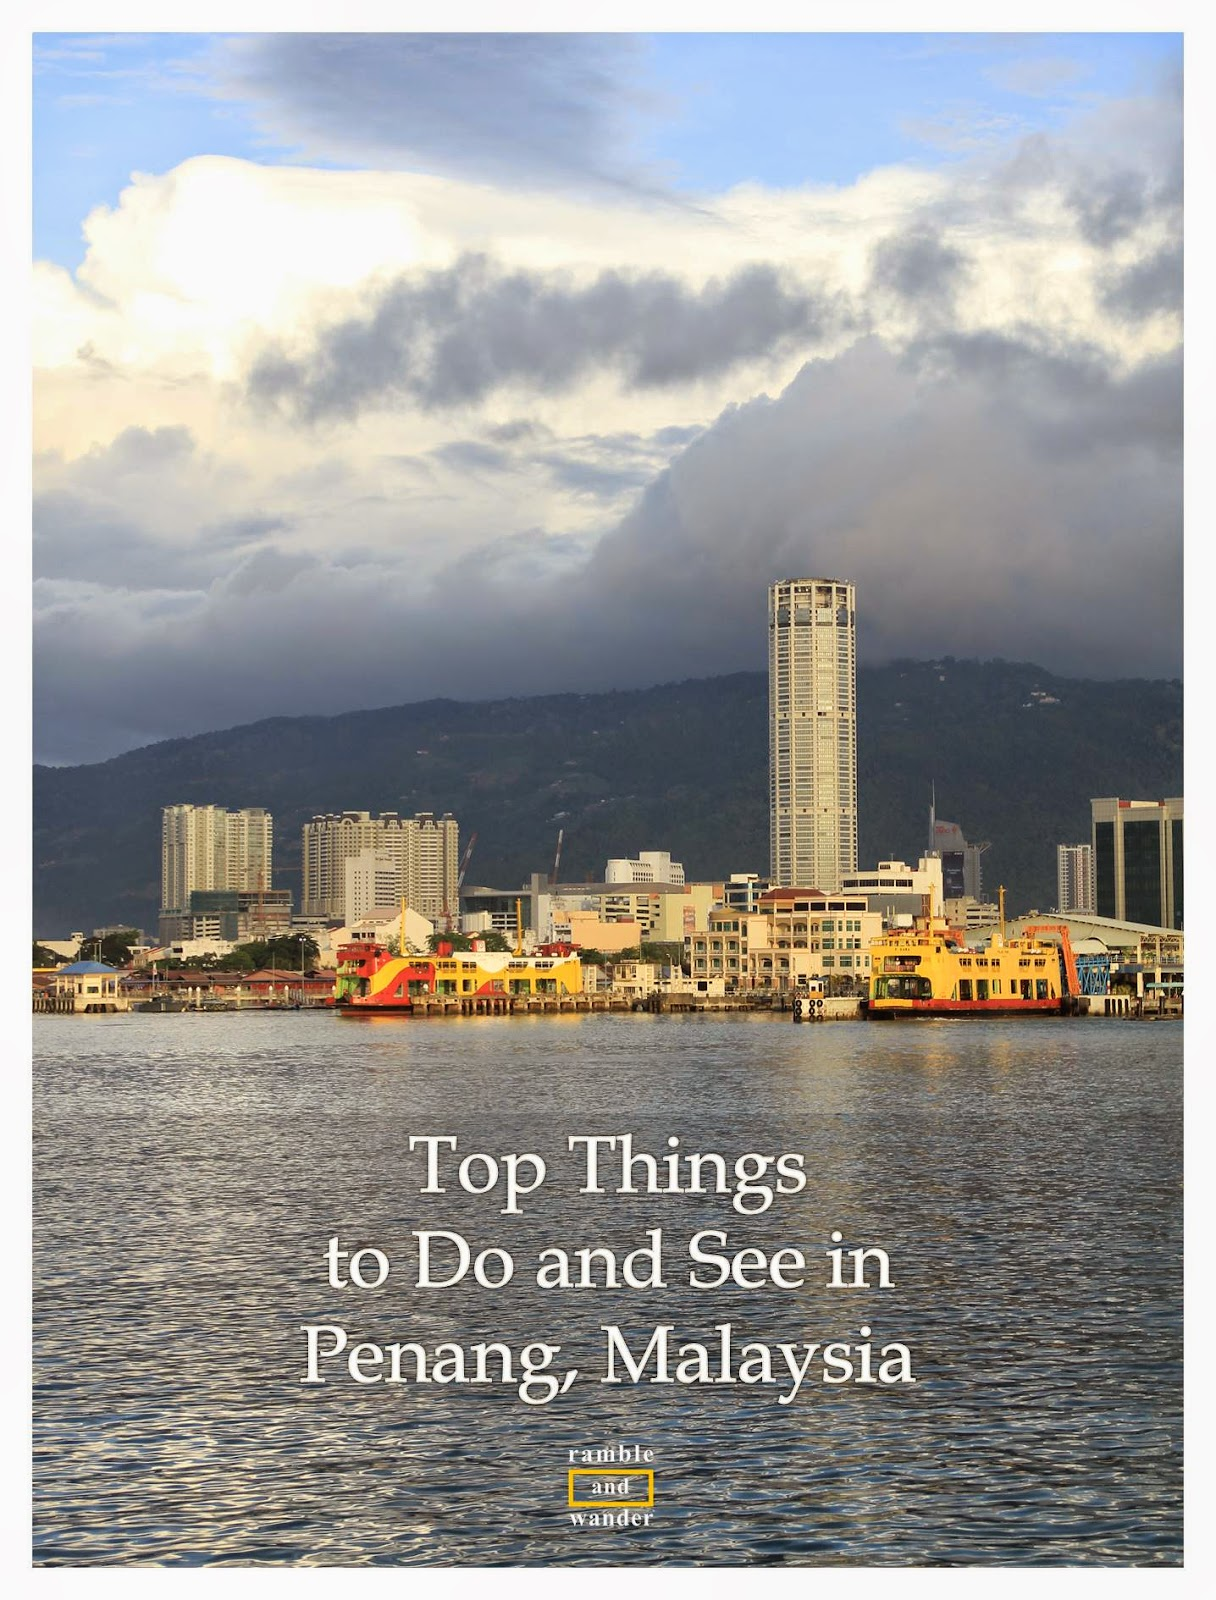 Top Things to Do and See in Penang, Malaysia | www.rambleandwander.com